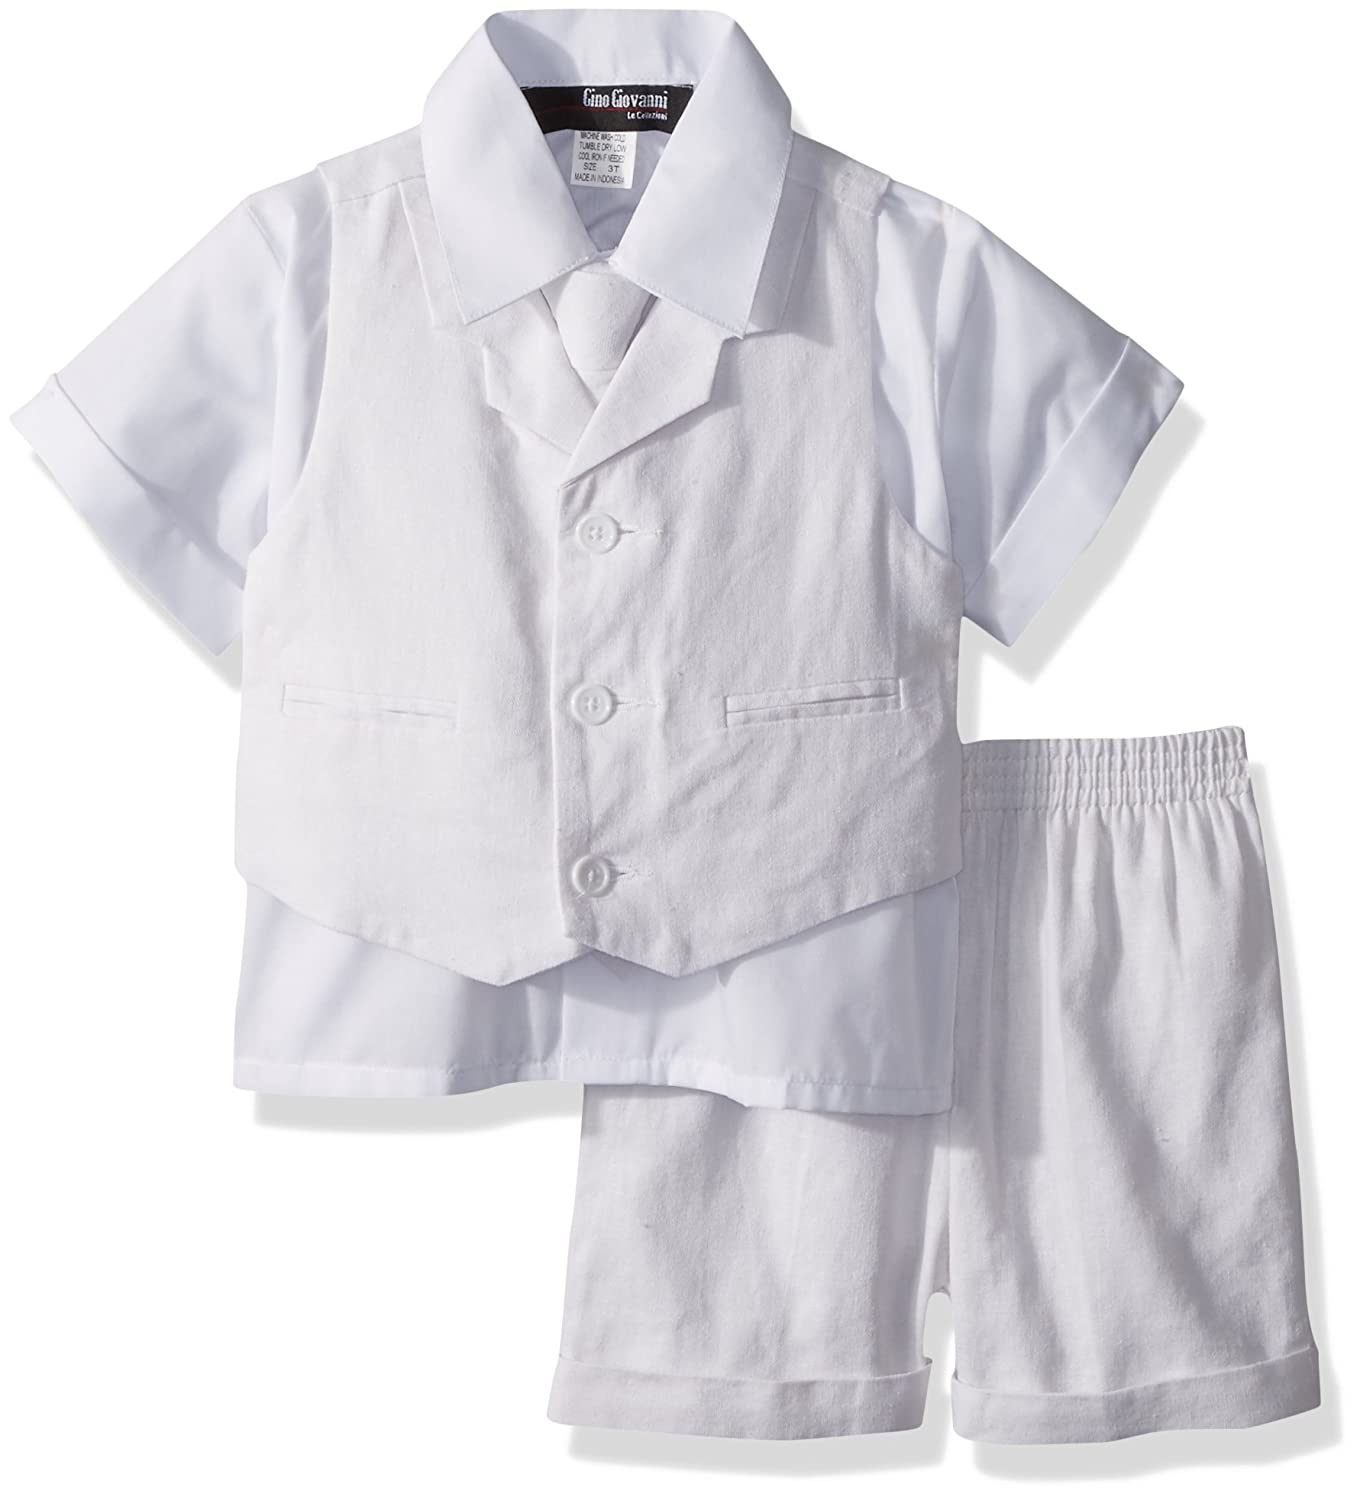 Gino Giovanni Baby and Toddler Boy Summer Cotton/Linen Blend Suit Vest Short Set